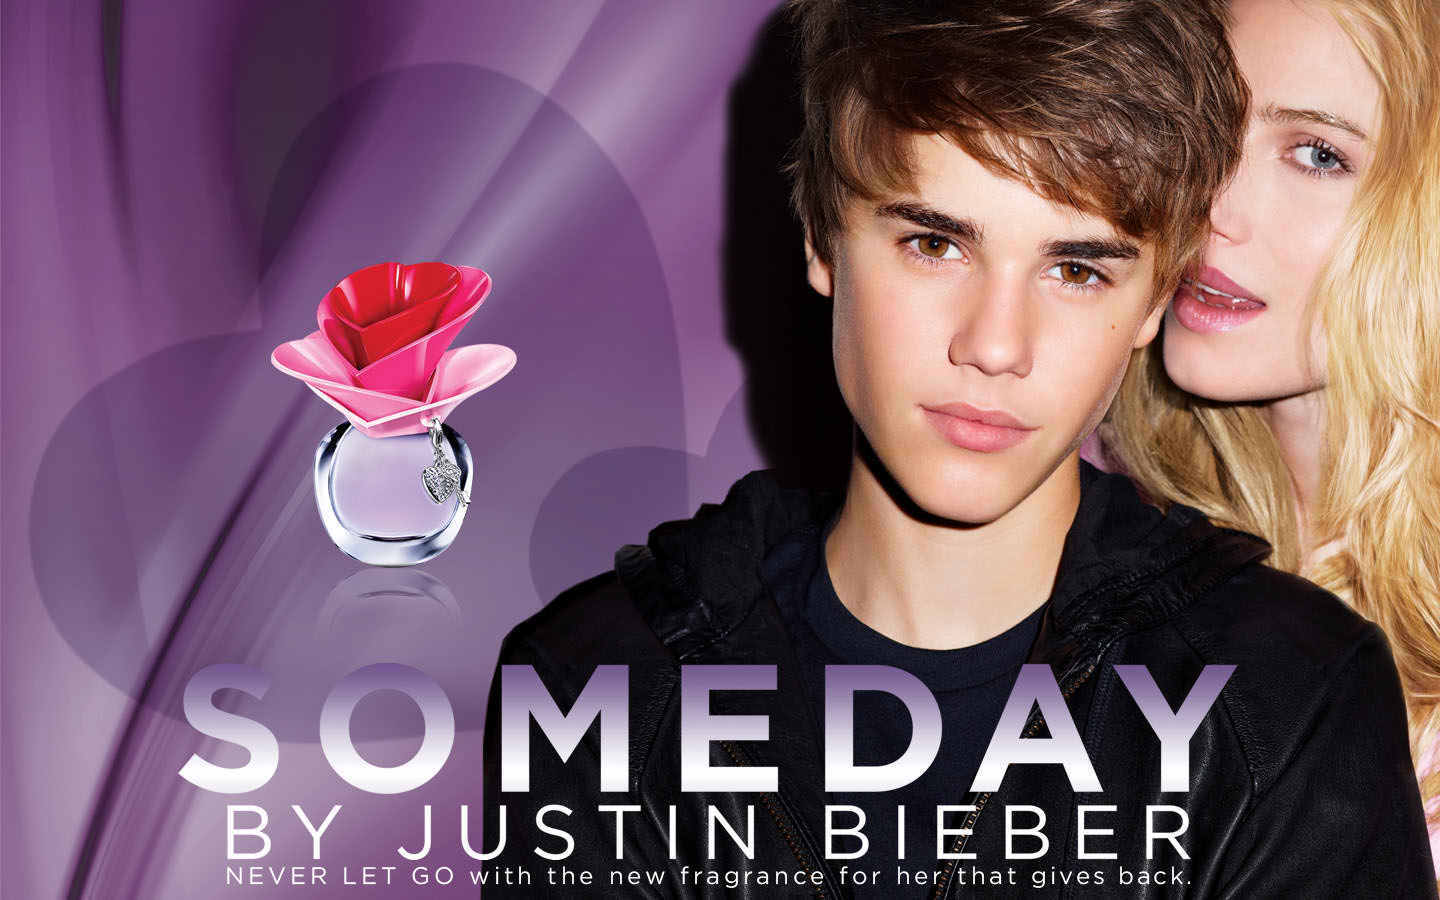 Justin Bieber : SOMEDAY! - Justin Bieber Wallpaper (27953092) - Fanpop